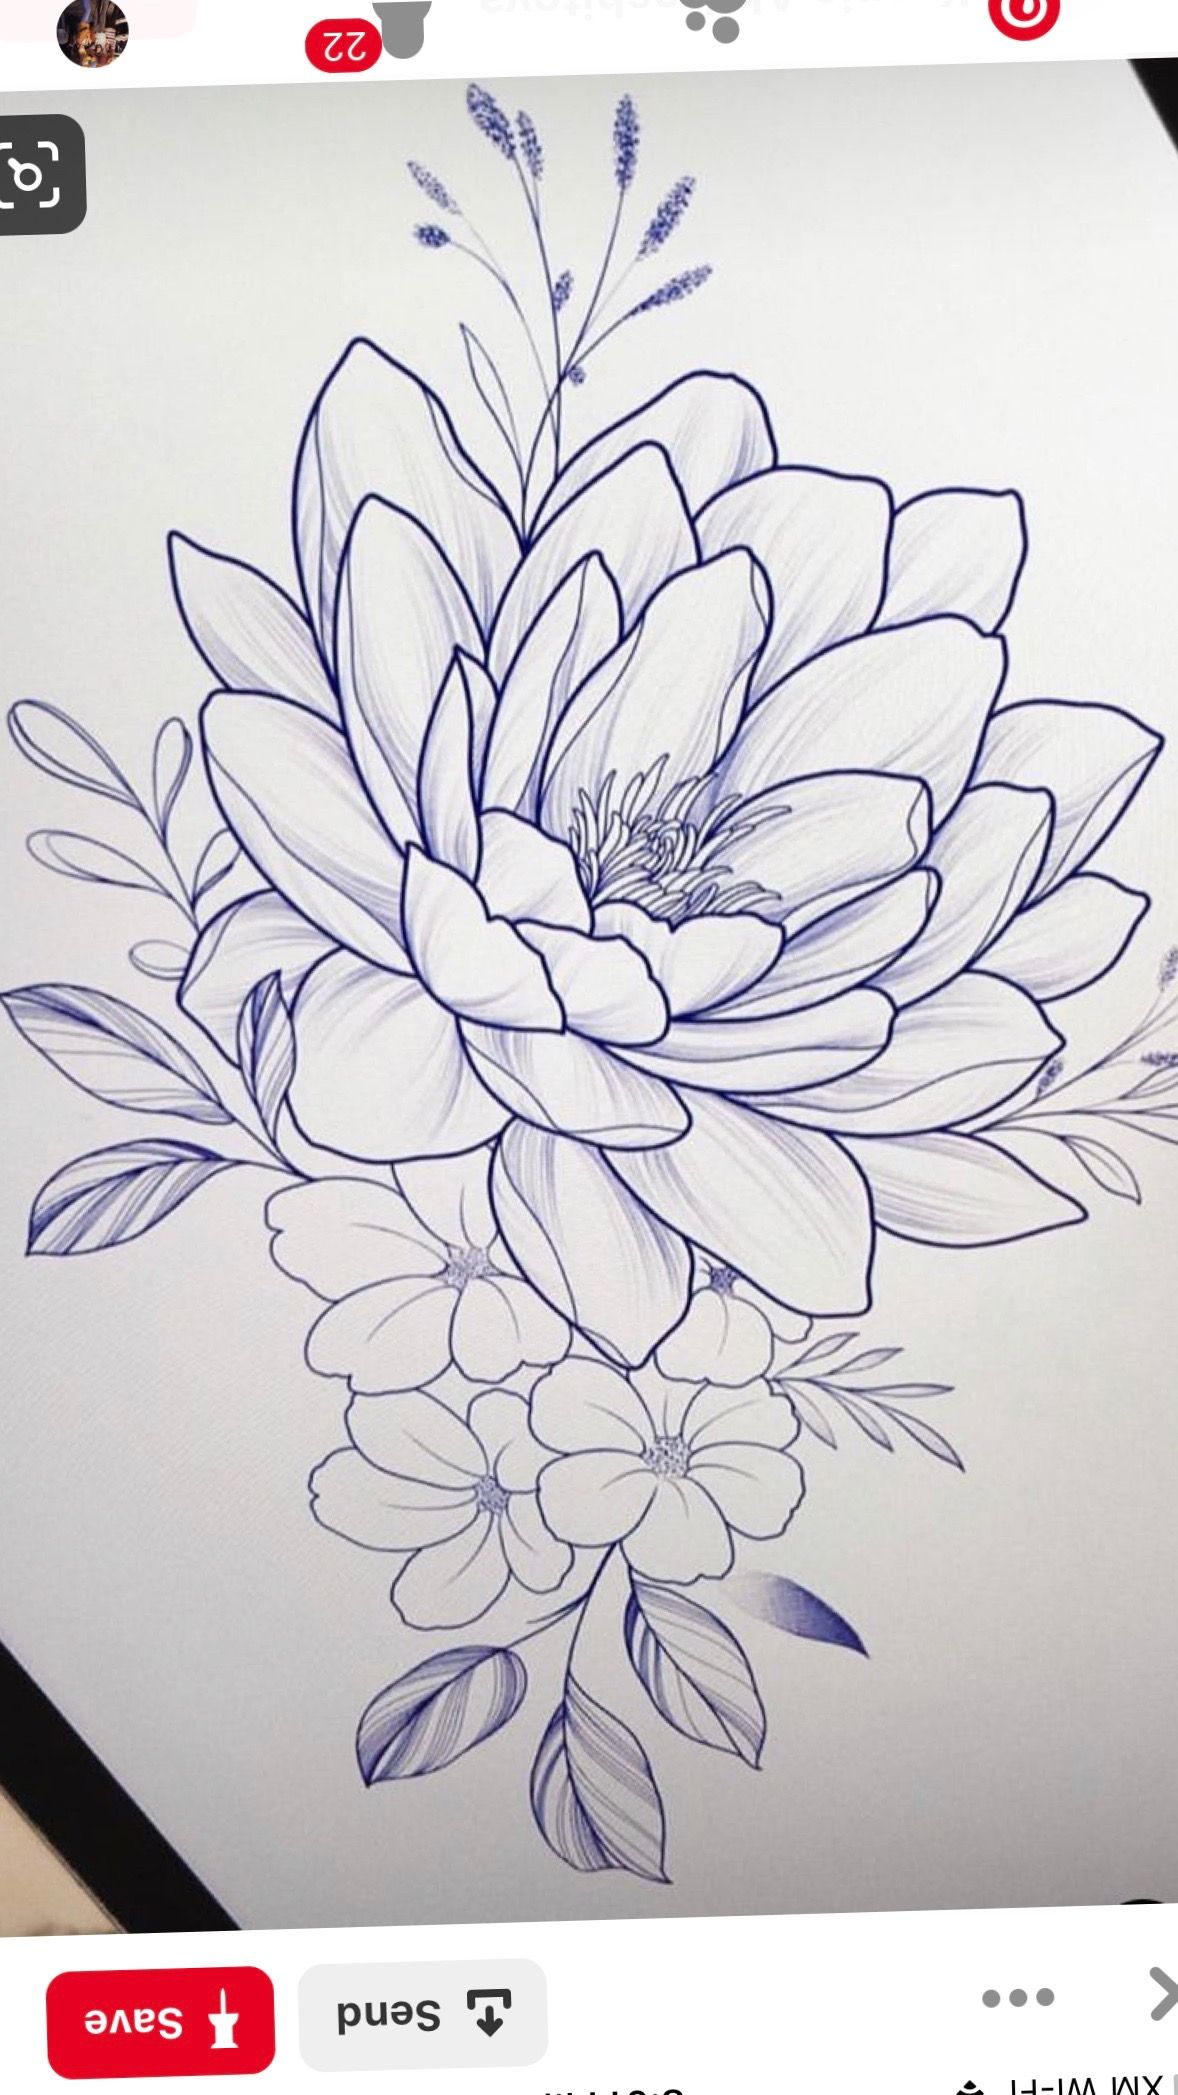 One Big Flower 3 Small Flowers Flower Drawing Flower Tattoo Drawings Flower Doodles